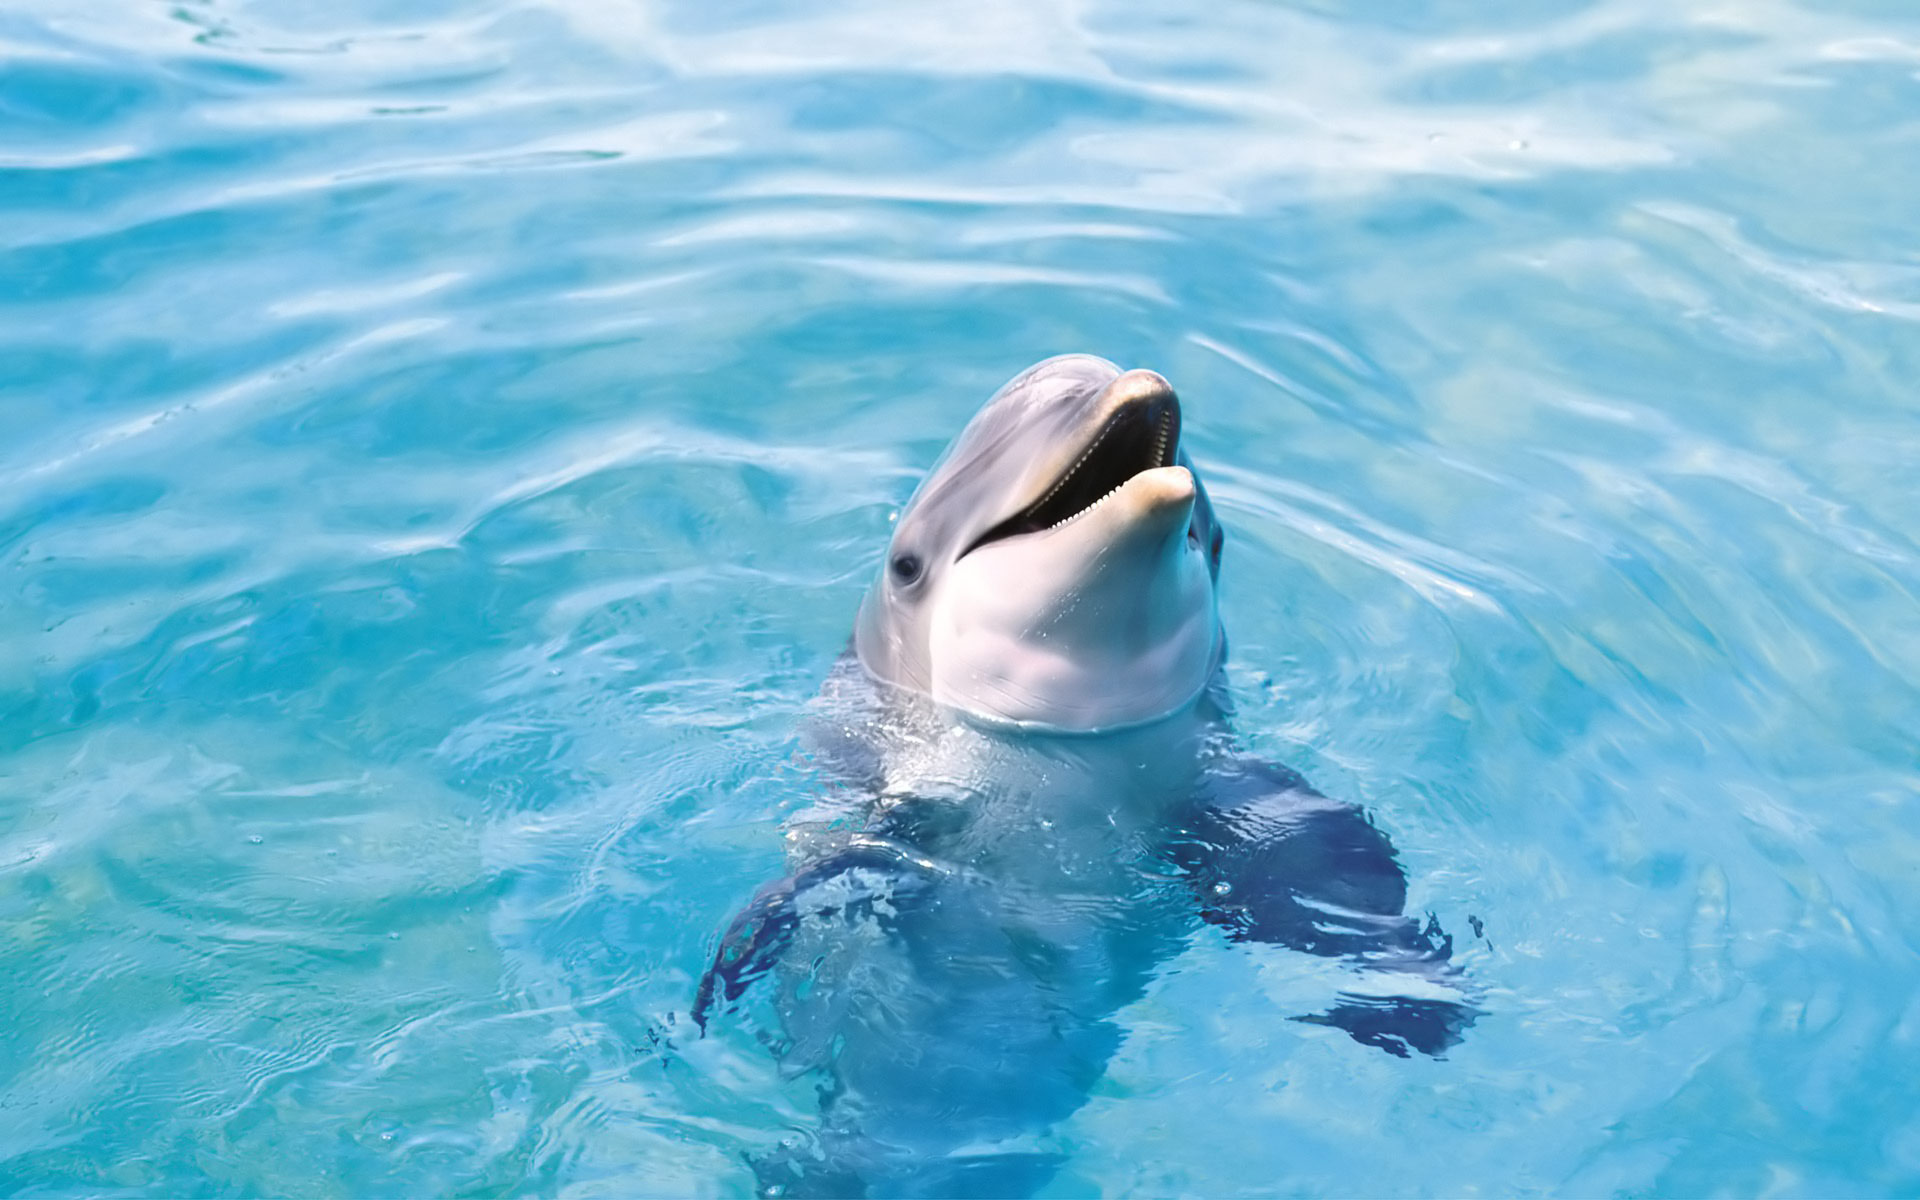 Baby Dolphin Wallpaper   HD Wallpapers 1920x1200